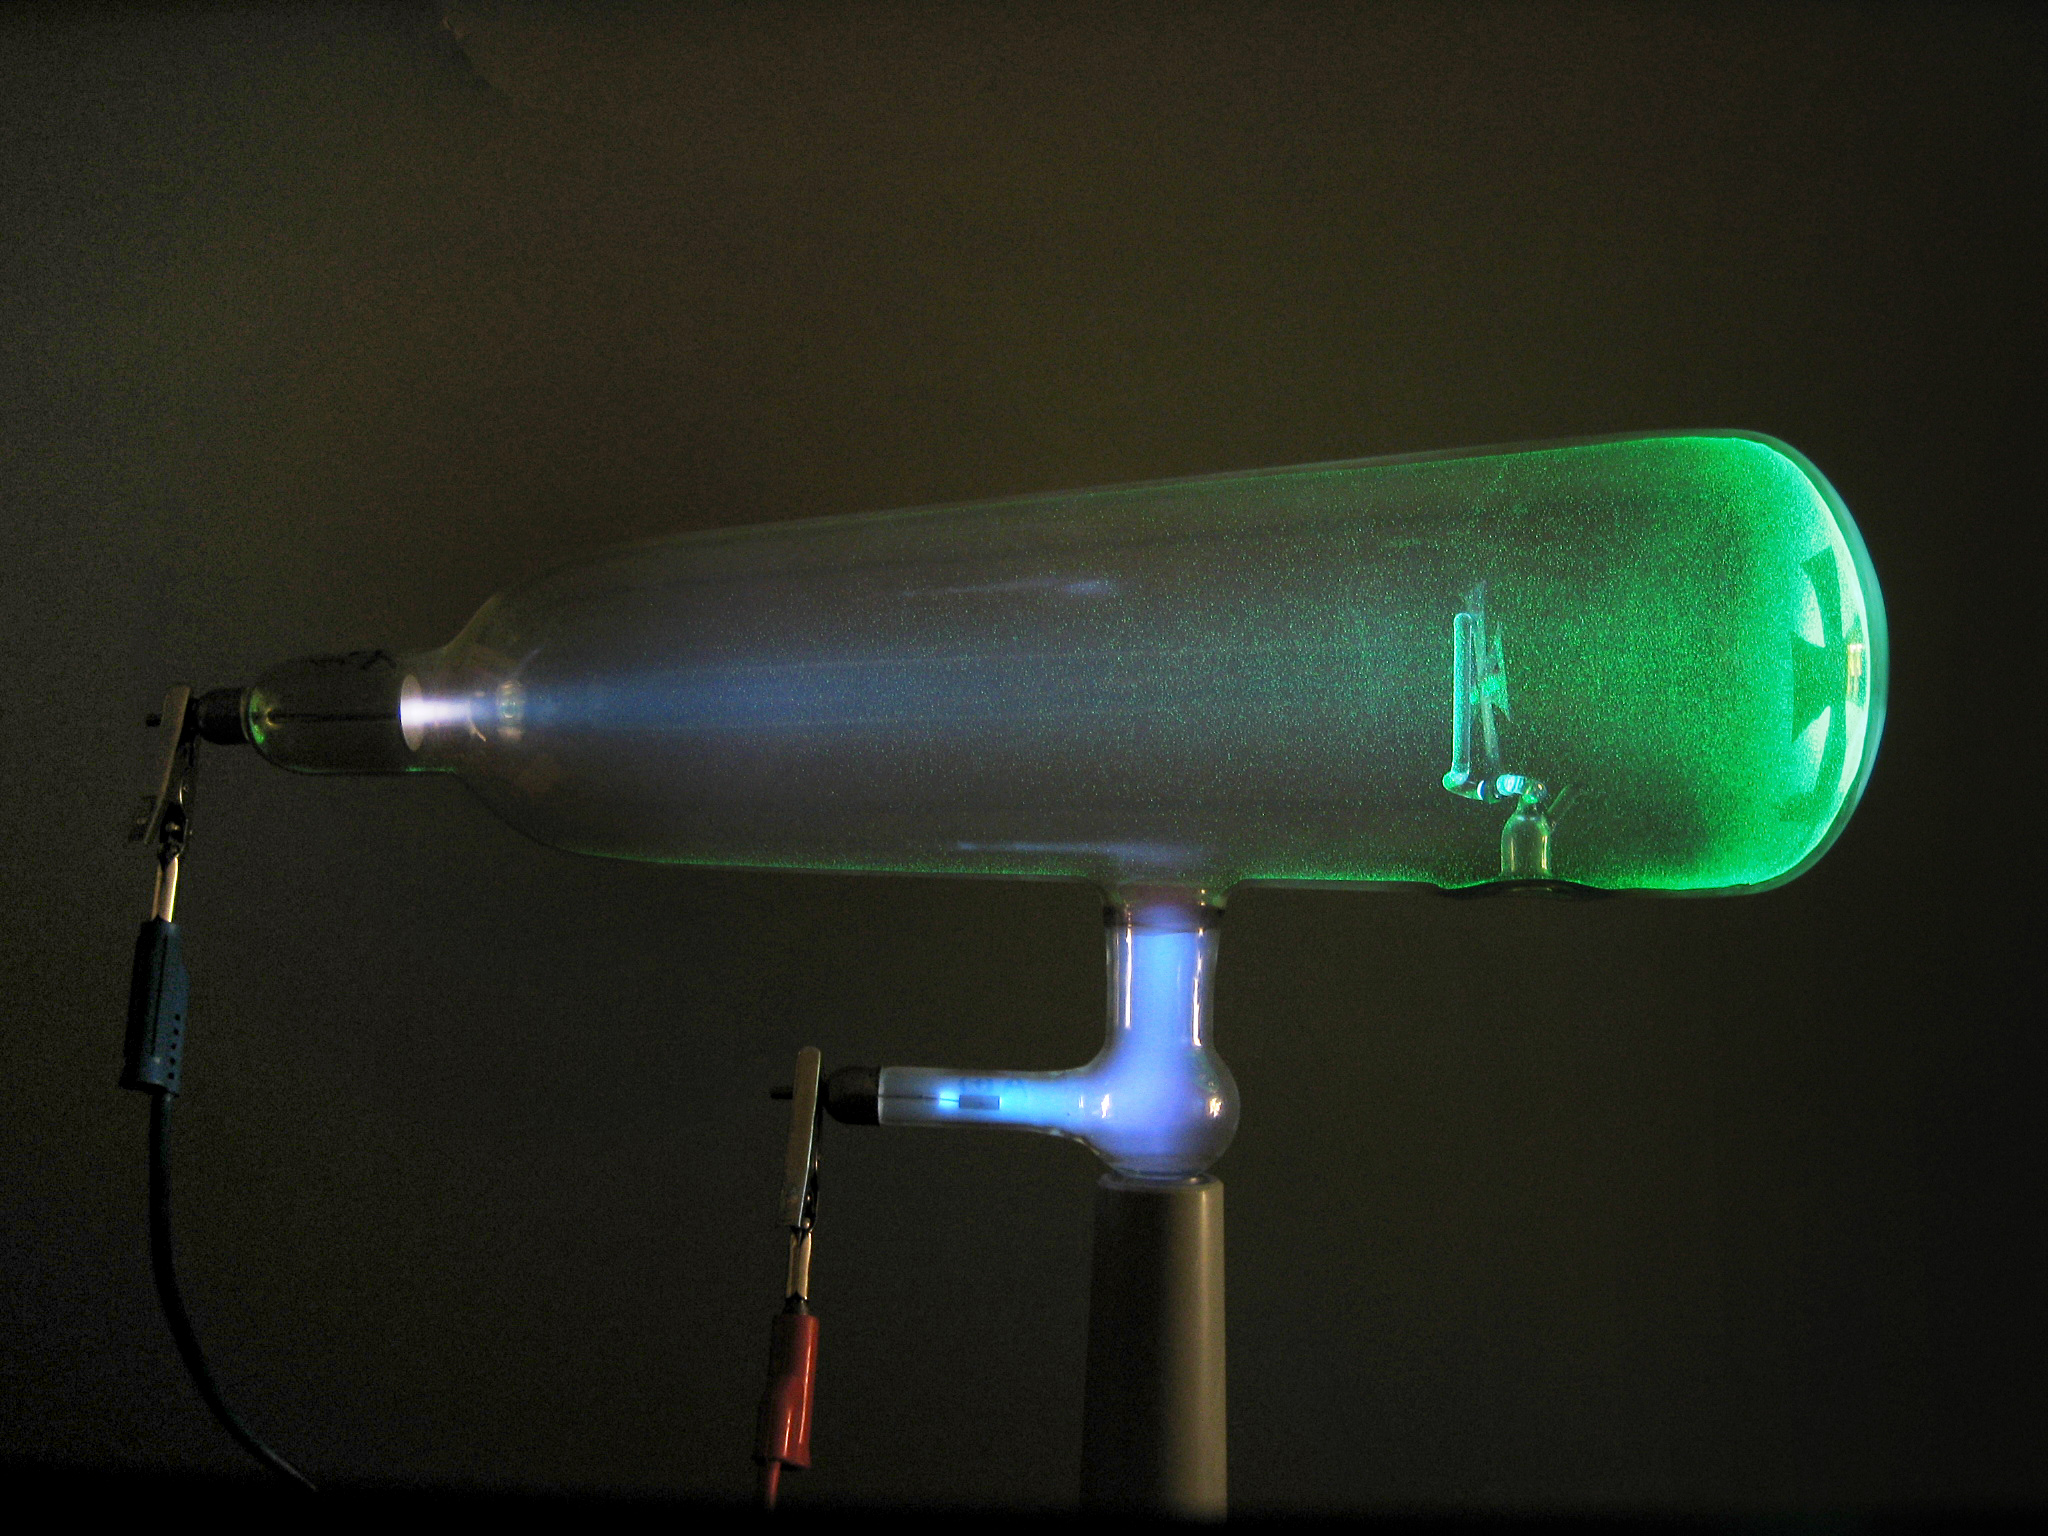 A glass tube containing a glowing green electron beam